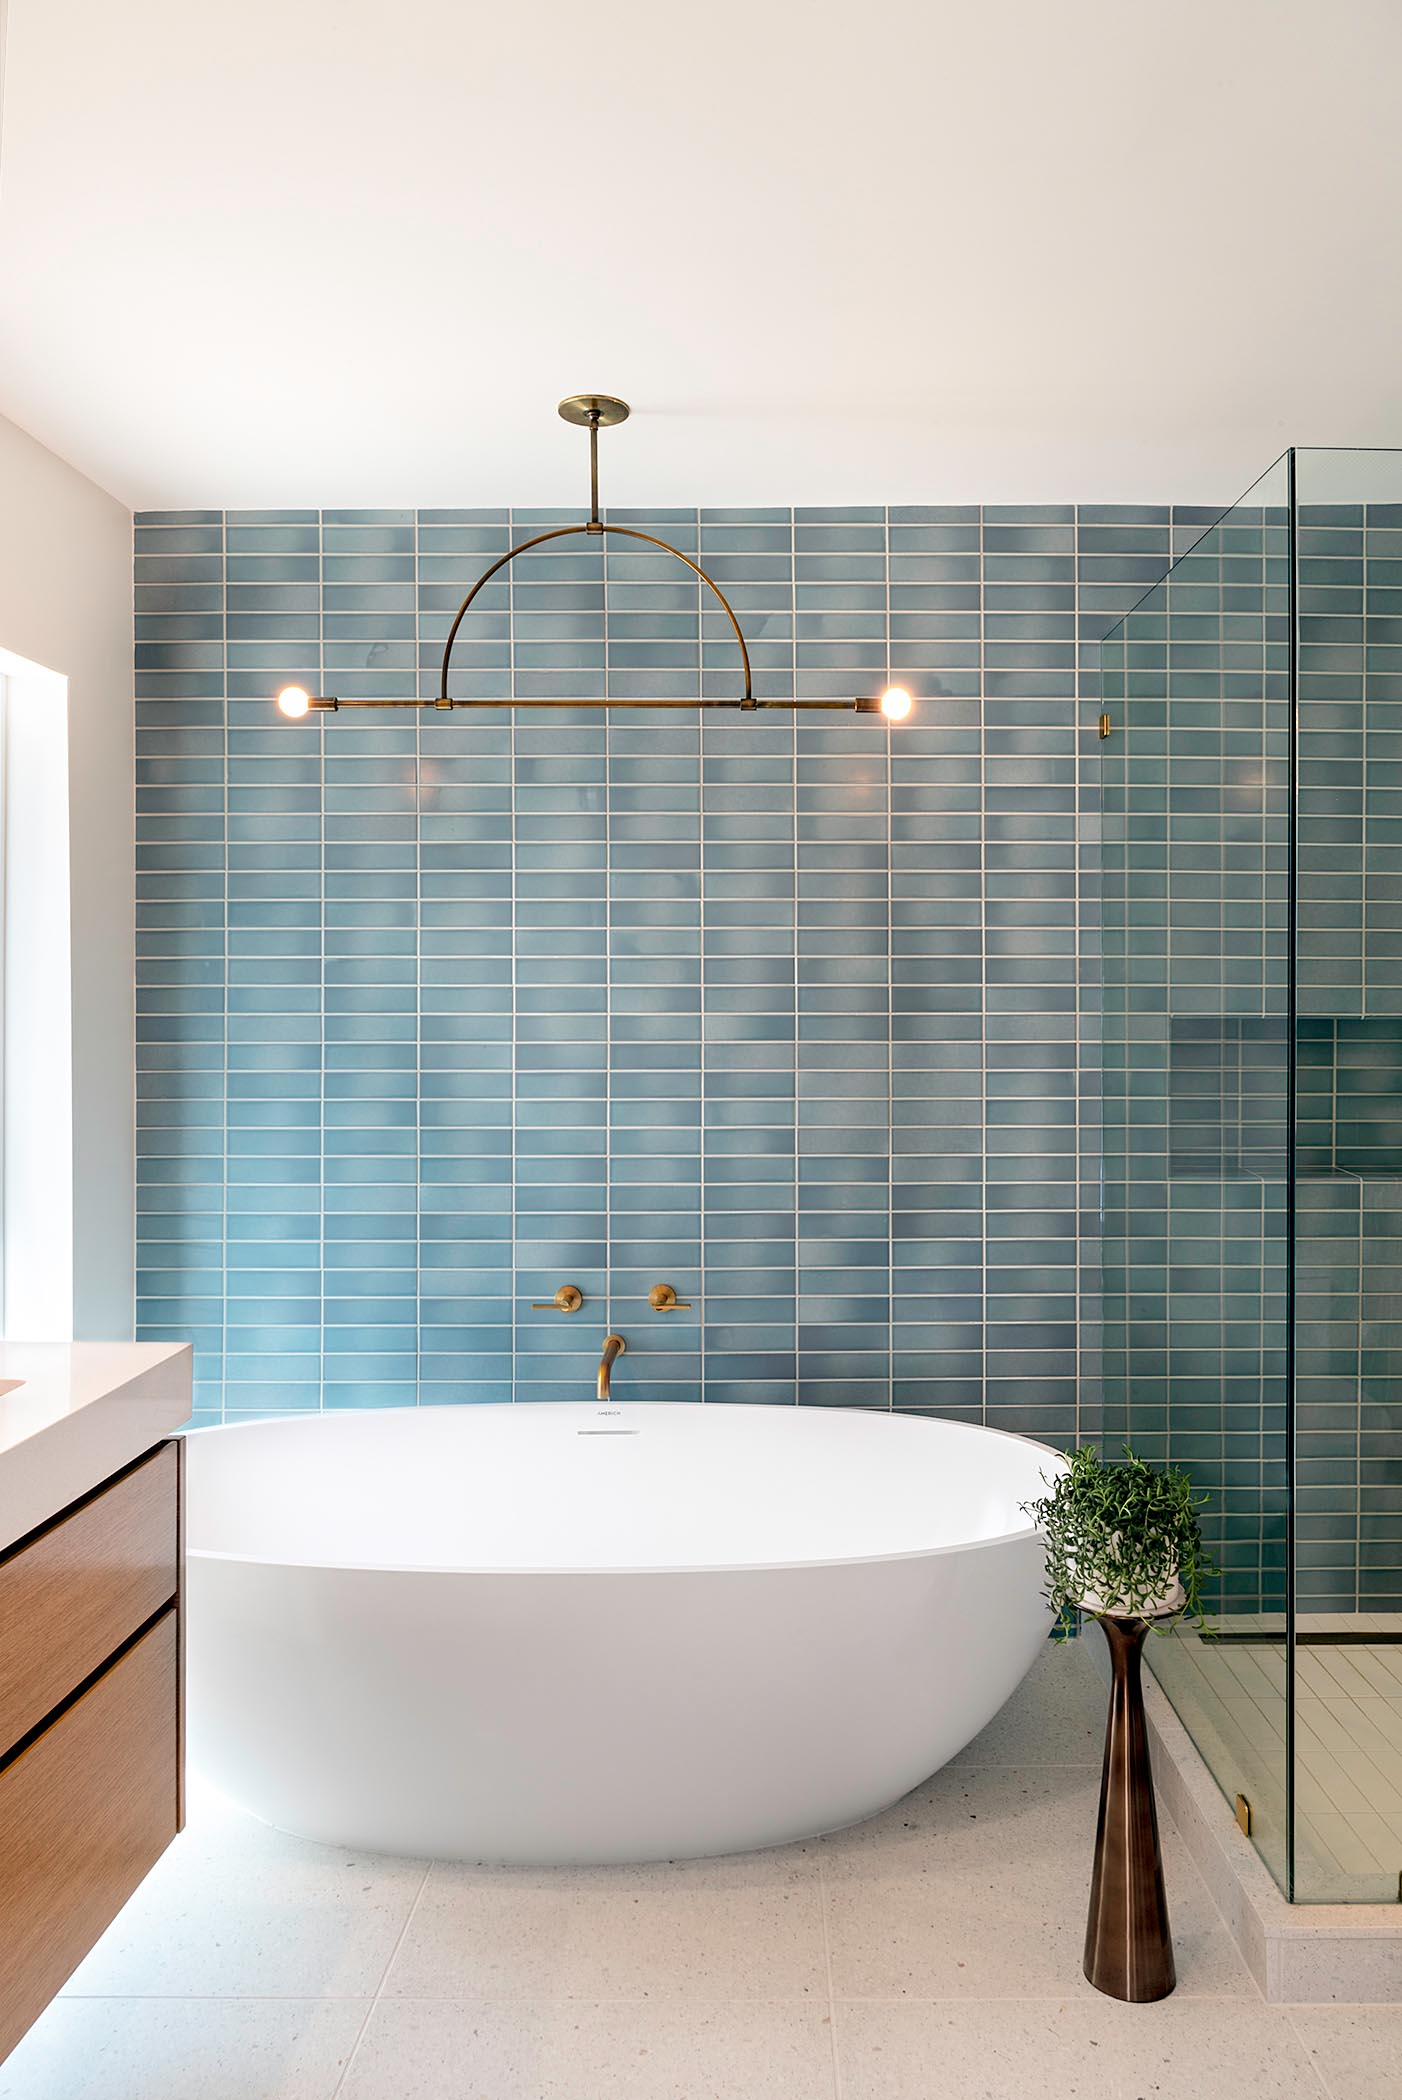 This modern bathroom with blue rectangular wall tile, a minimalist light fixture, a freestanding white bathtub, and brass fixtures.